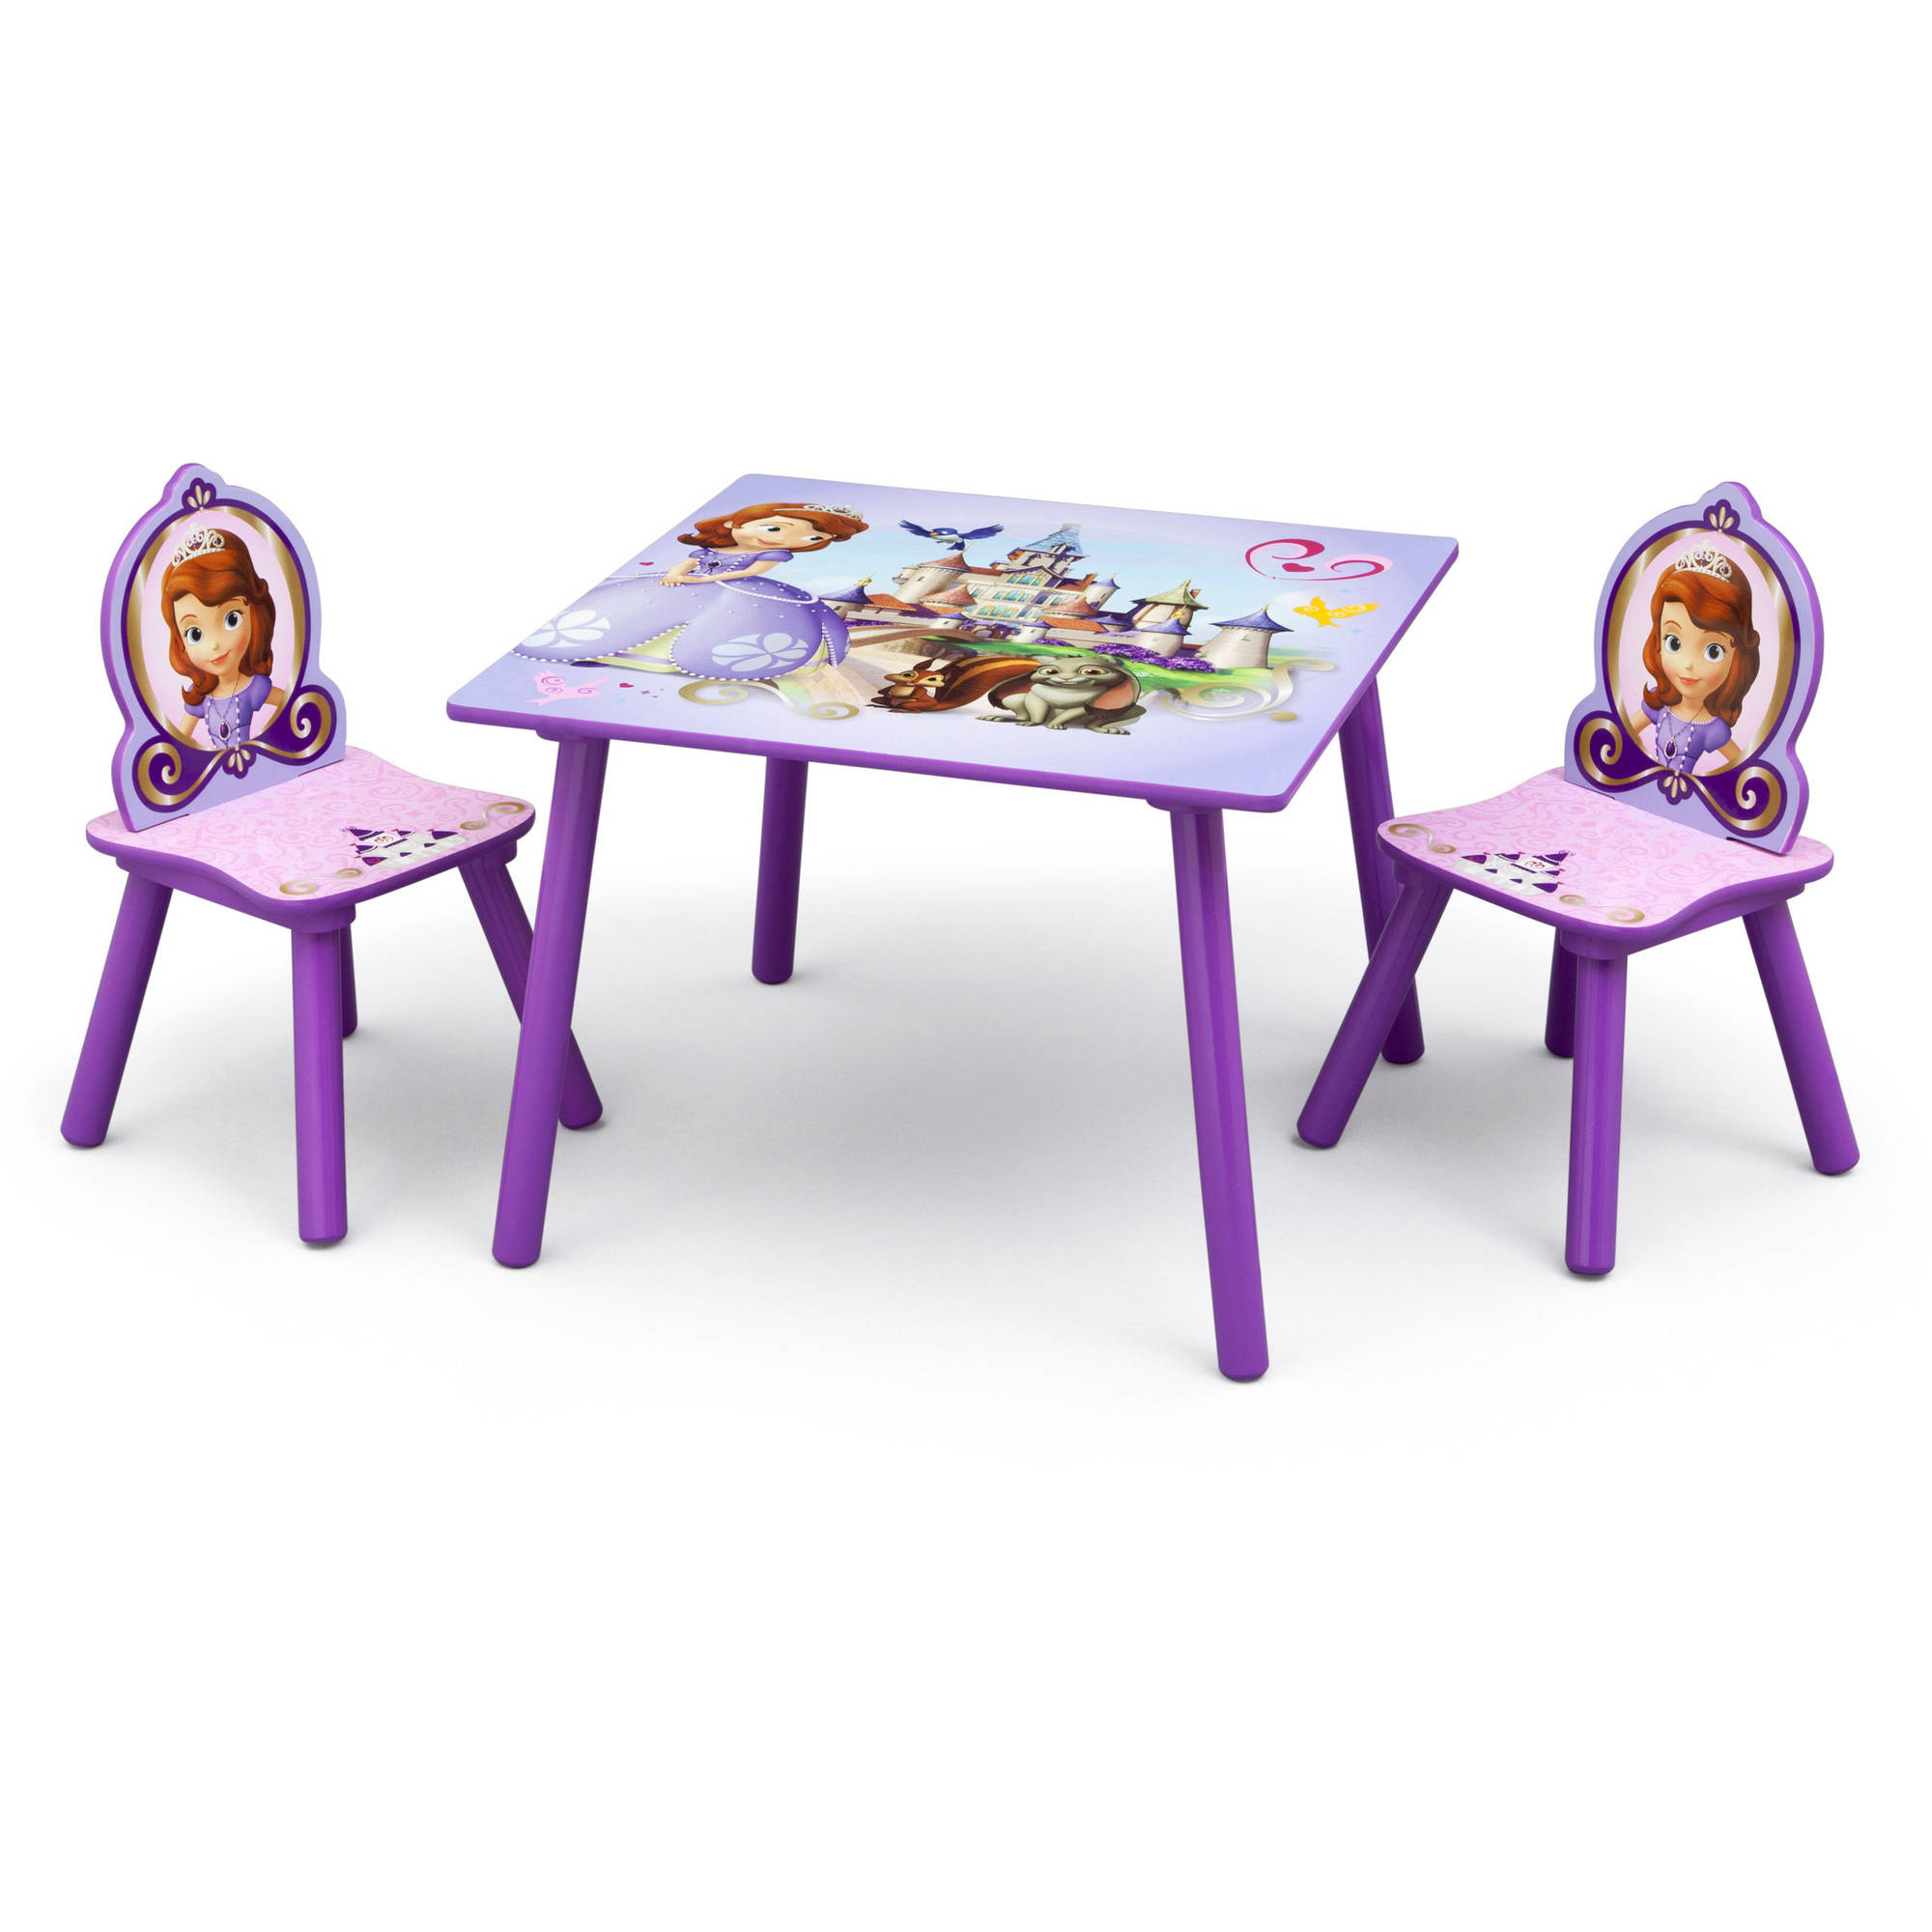 Disney Jr. Sofia the First Table and Chairs Set, Lavender - Walmart.com